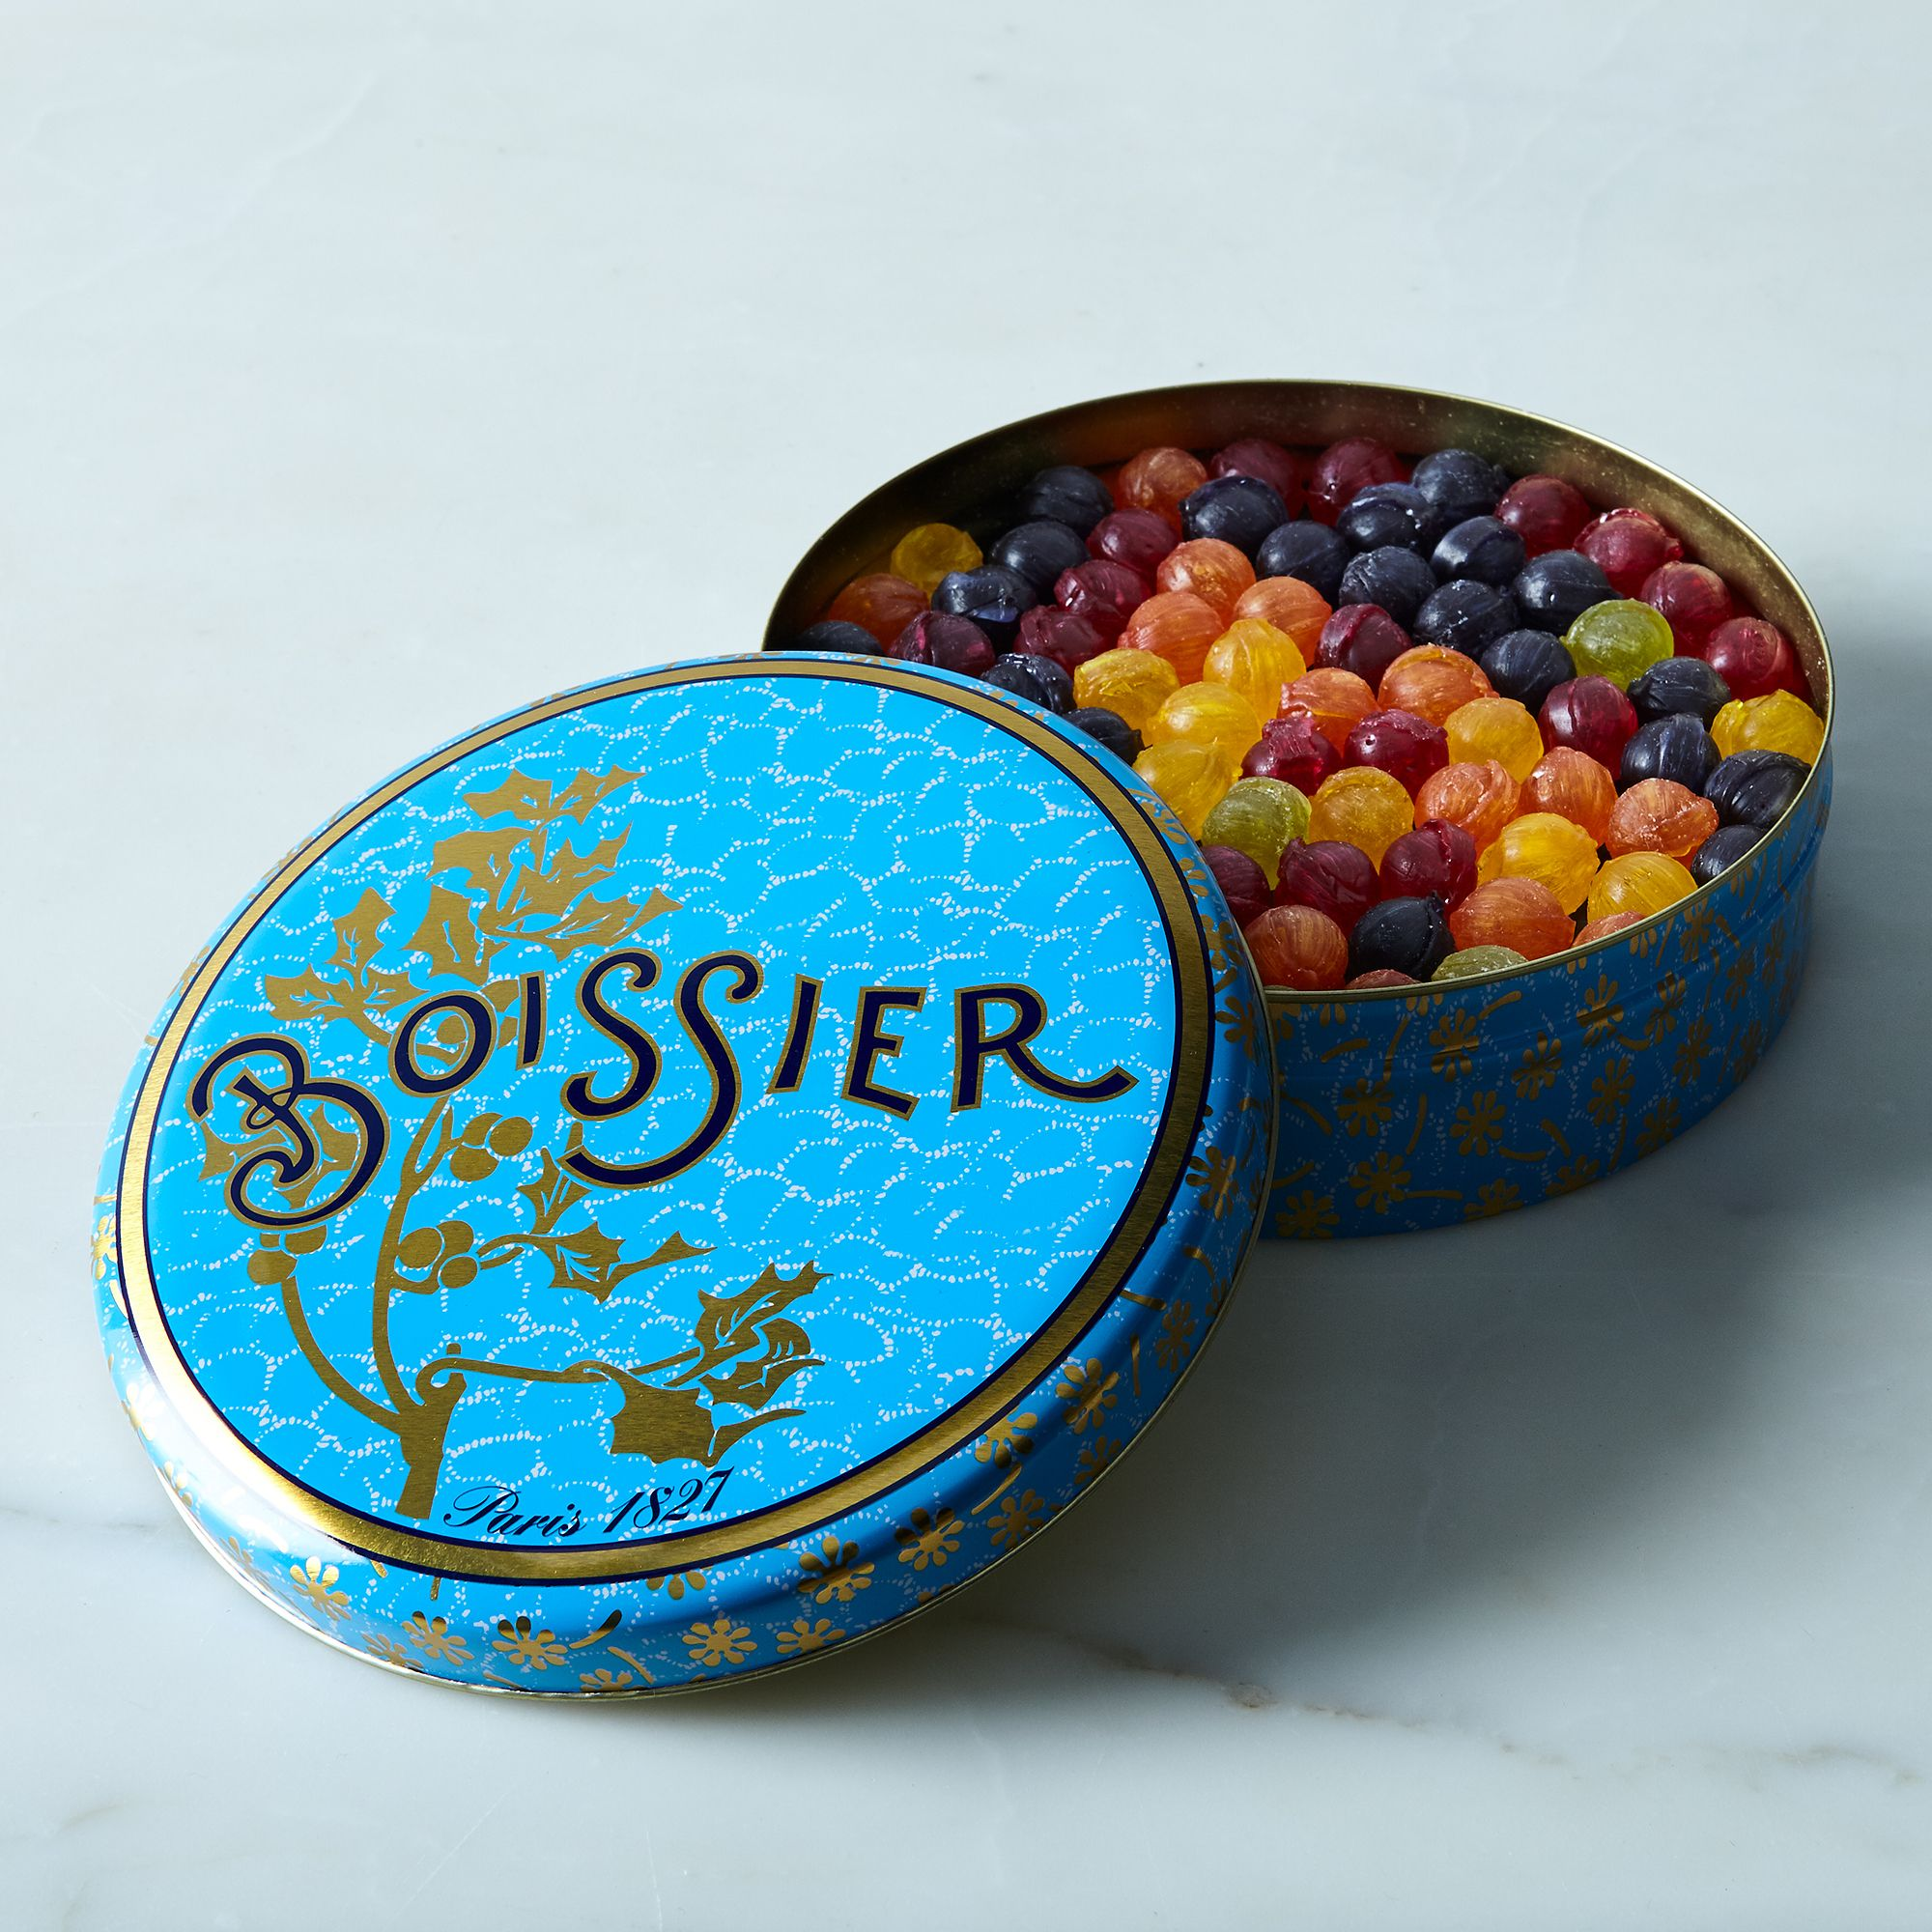 Df7ae3c5 59c7 4f3e 9cdd 76260bdaf0ff  2016 1123 maison boissier assorted fruit flavored parisian hard candies detail silo rocky luten 202